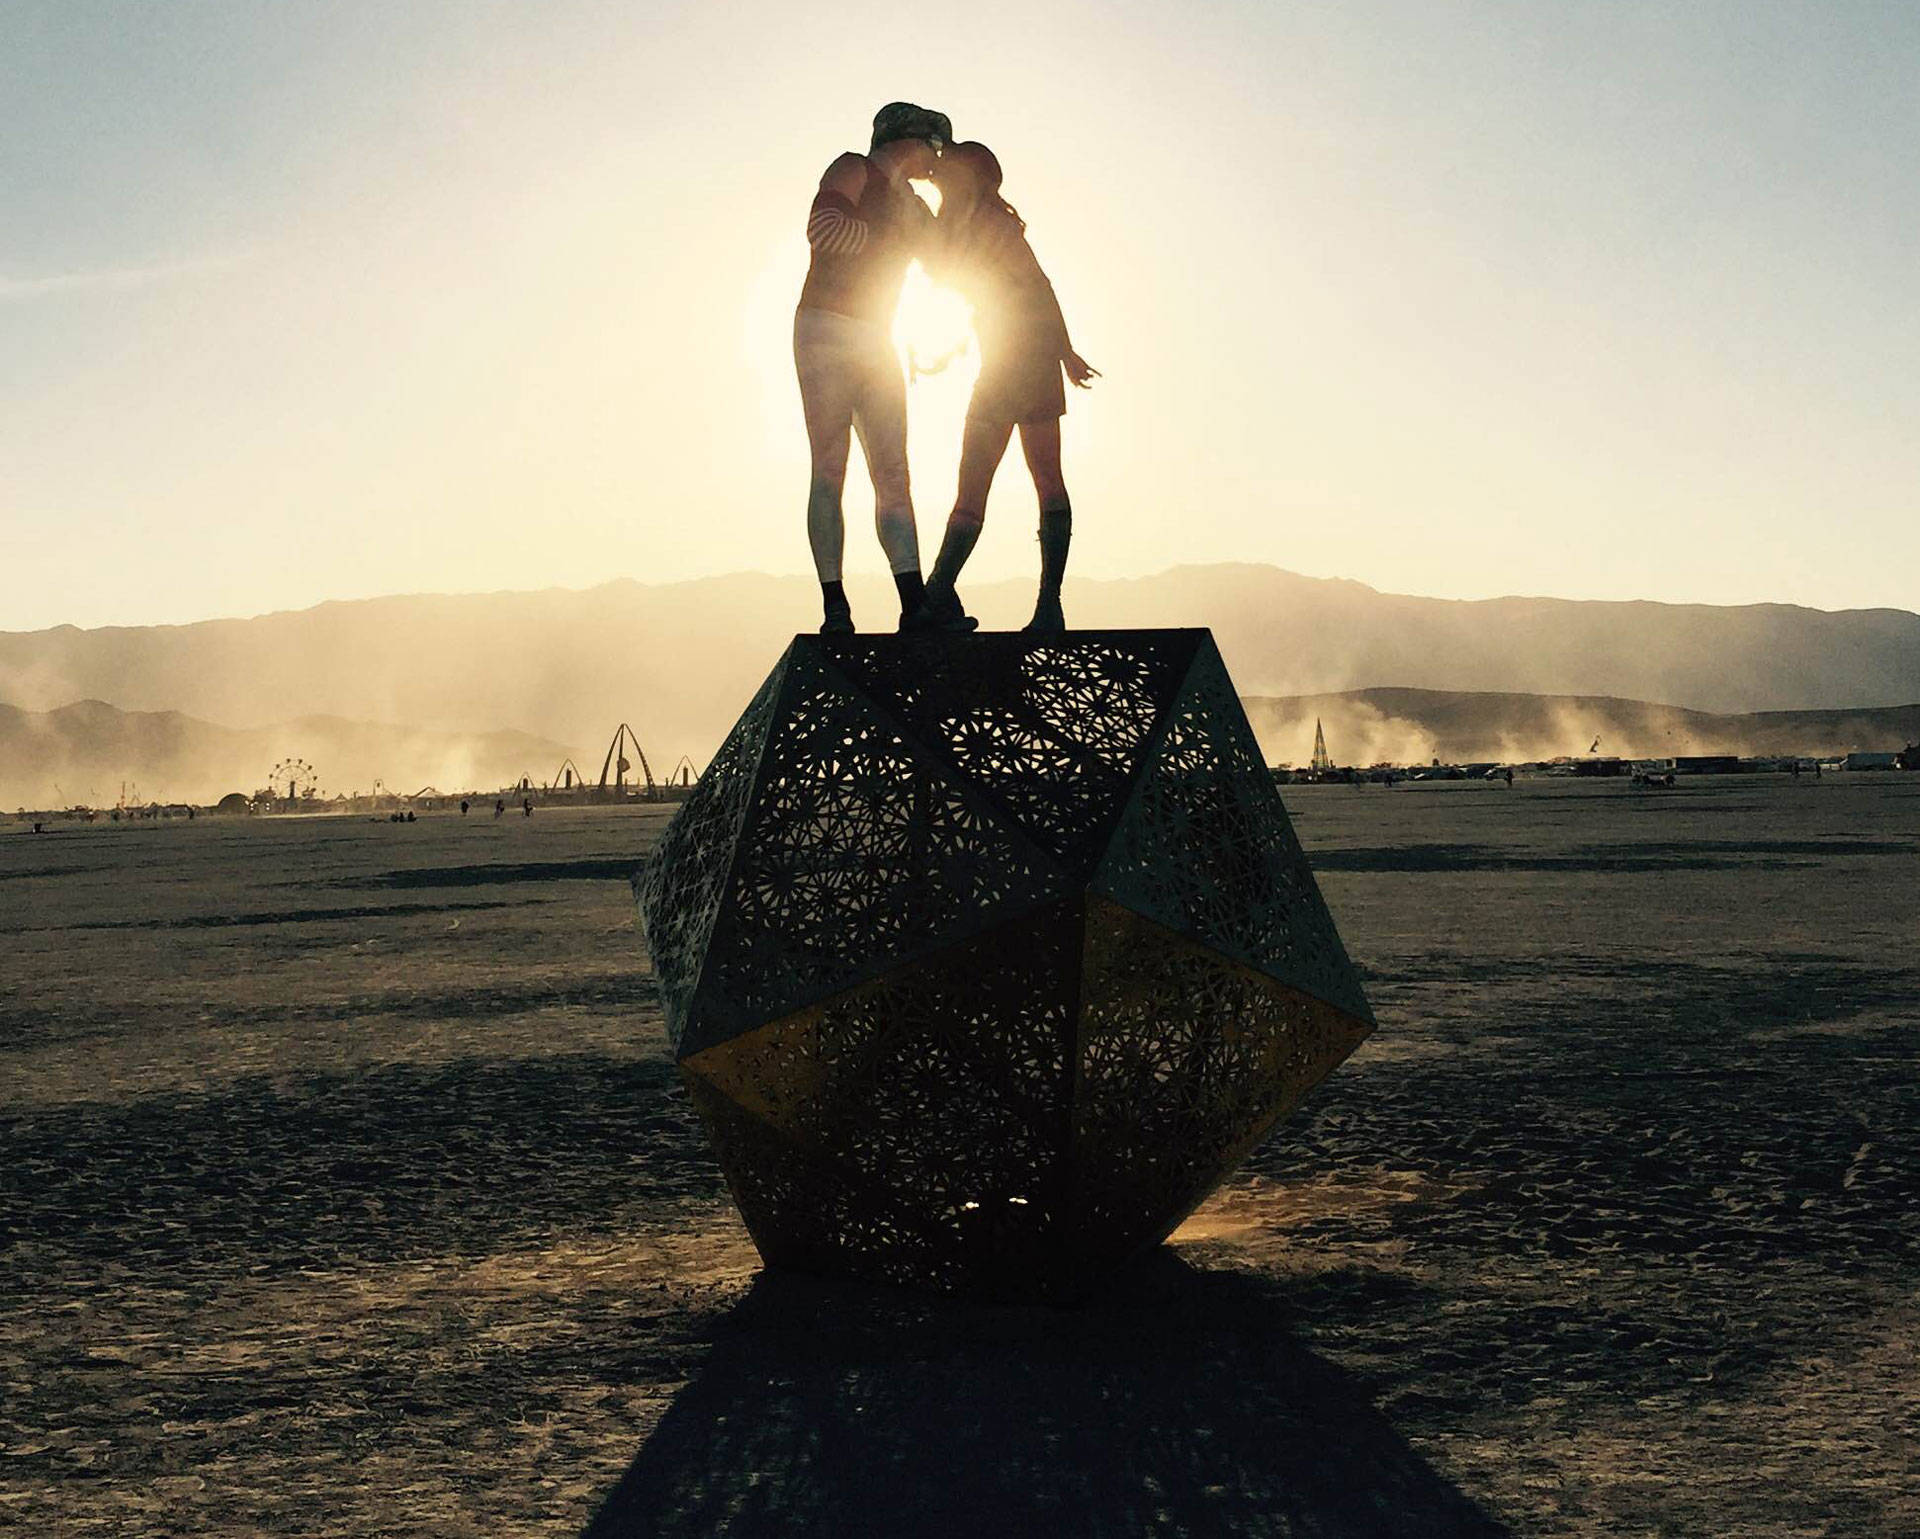 April Dembosky and her husband at Burning Man, 2015.  Courtesy of April Dembosky